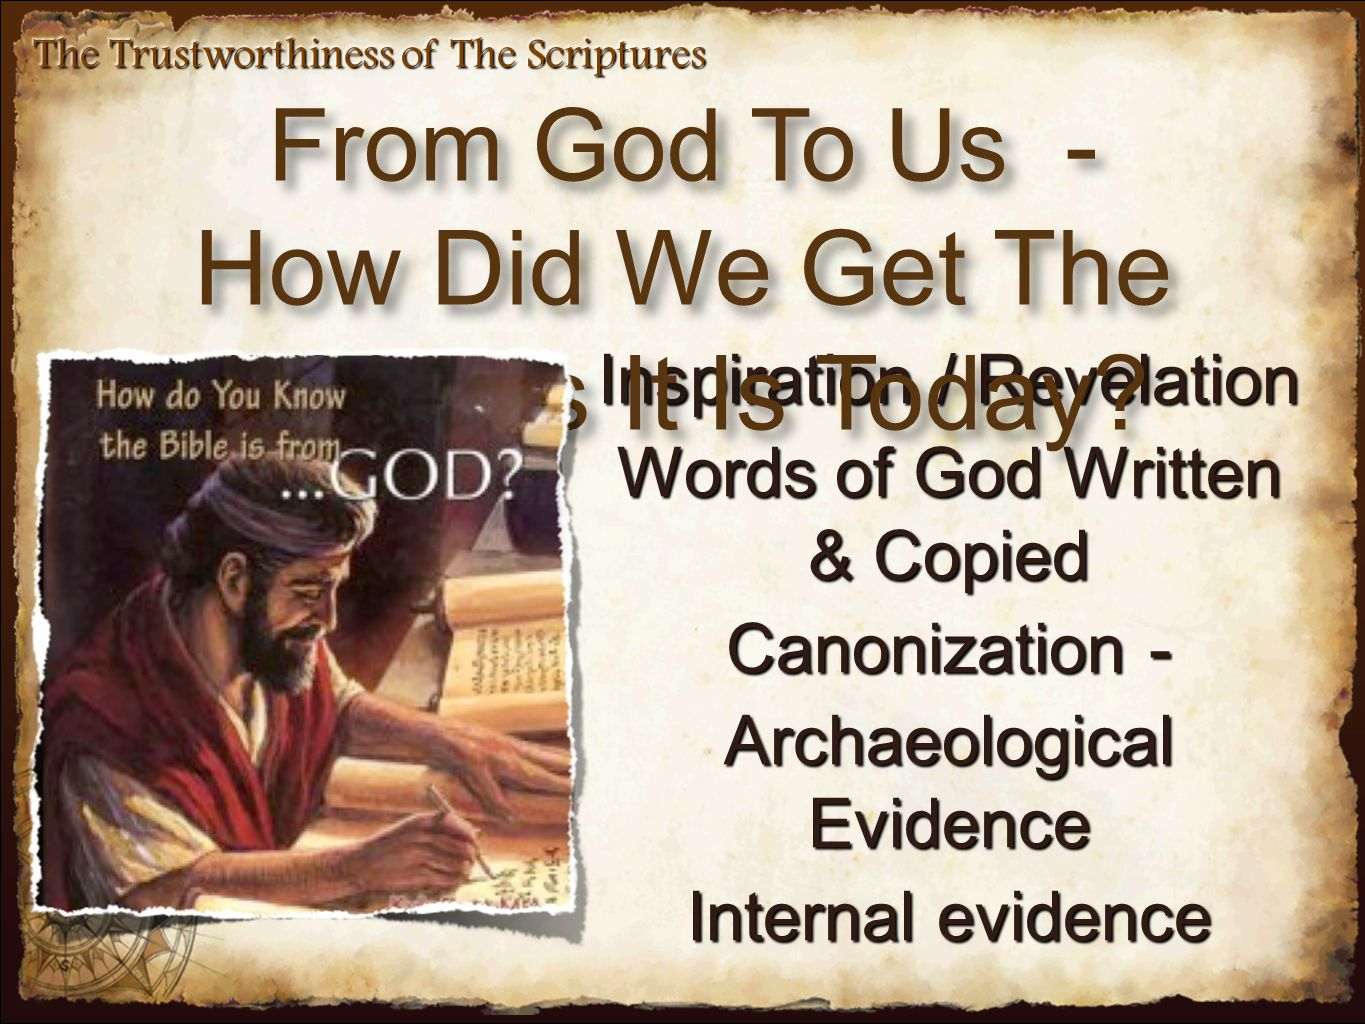 Inspiration / Revelation Words of God Written & Copied Canonization - Archaeological Evidence Internal evidence From God To Us - How Did We Get The Bi